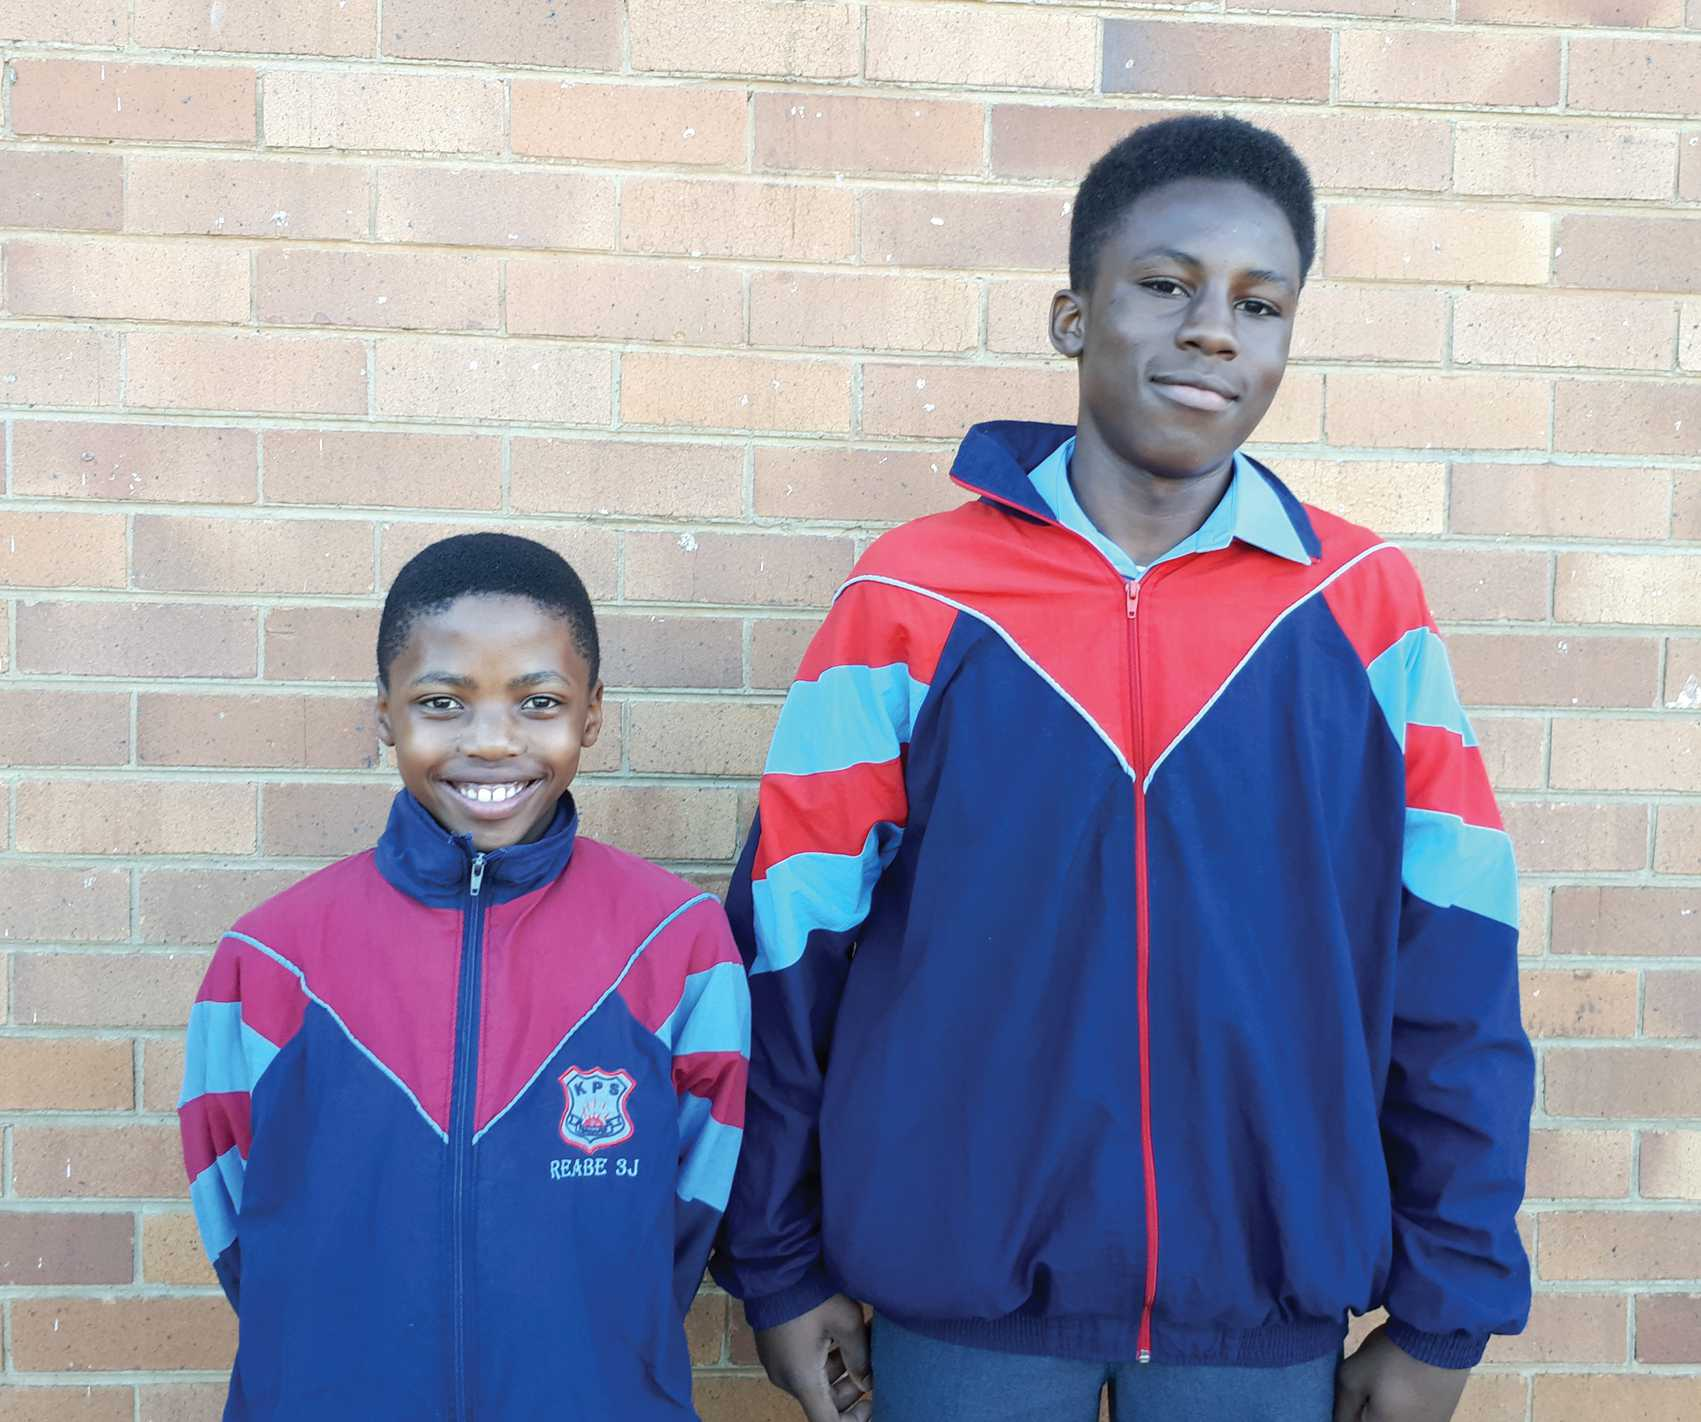 Congratulations to two KPS hockey boys; Emmanuel Uchenya and Tuligano Tobedi who were selected, during the past school holiday, to take part in the Vision Sport Elite u/13 and u/12 Hockey Squad that will tour to the Netherlands during the December holidays.